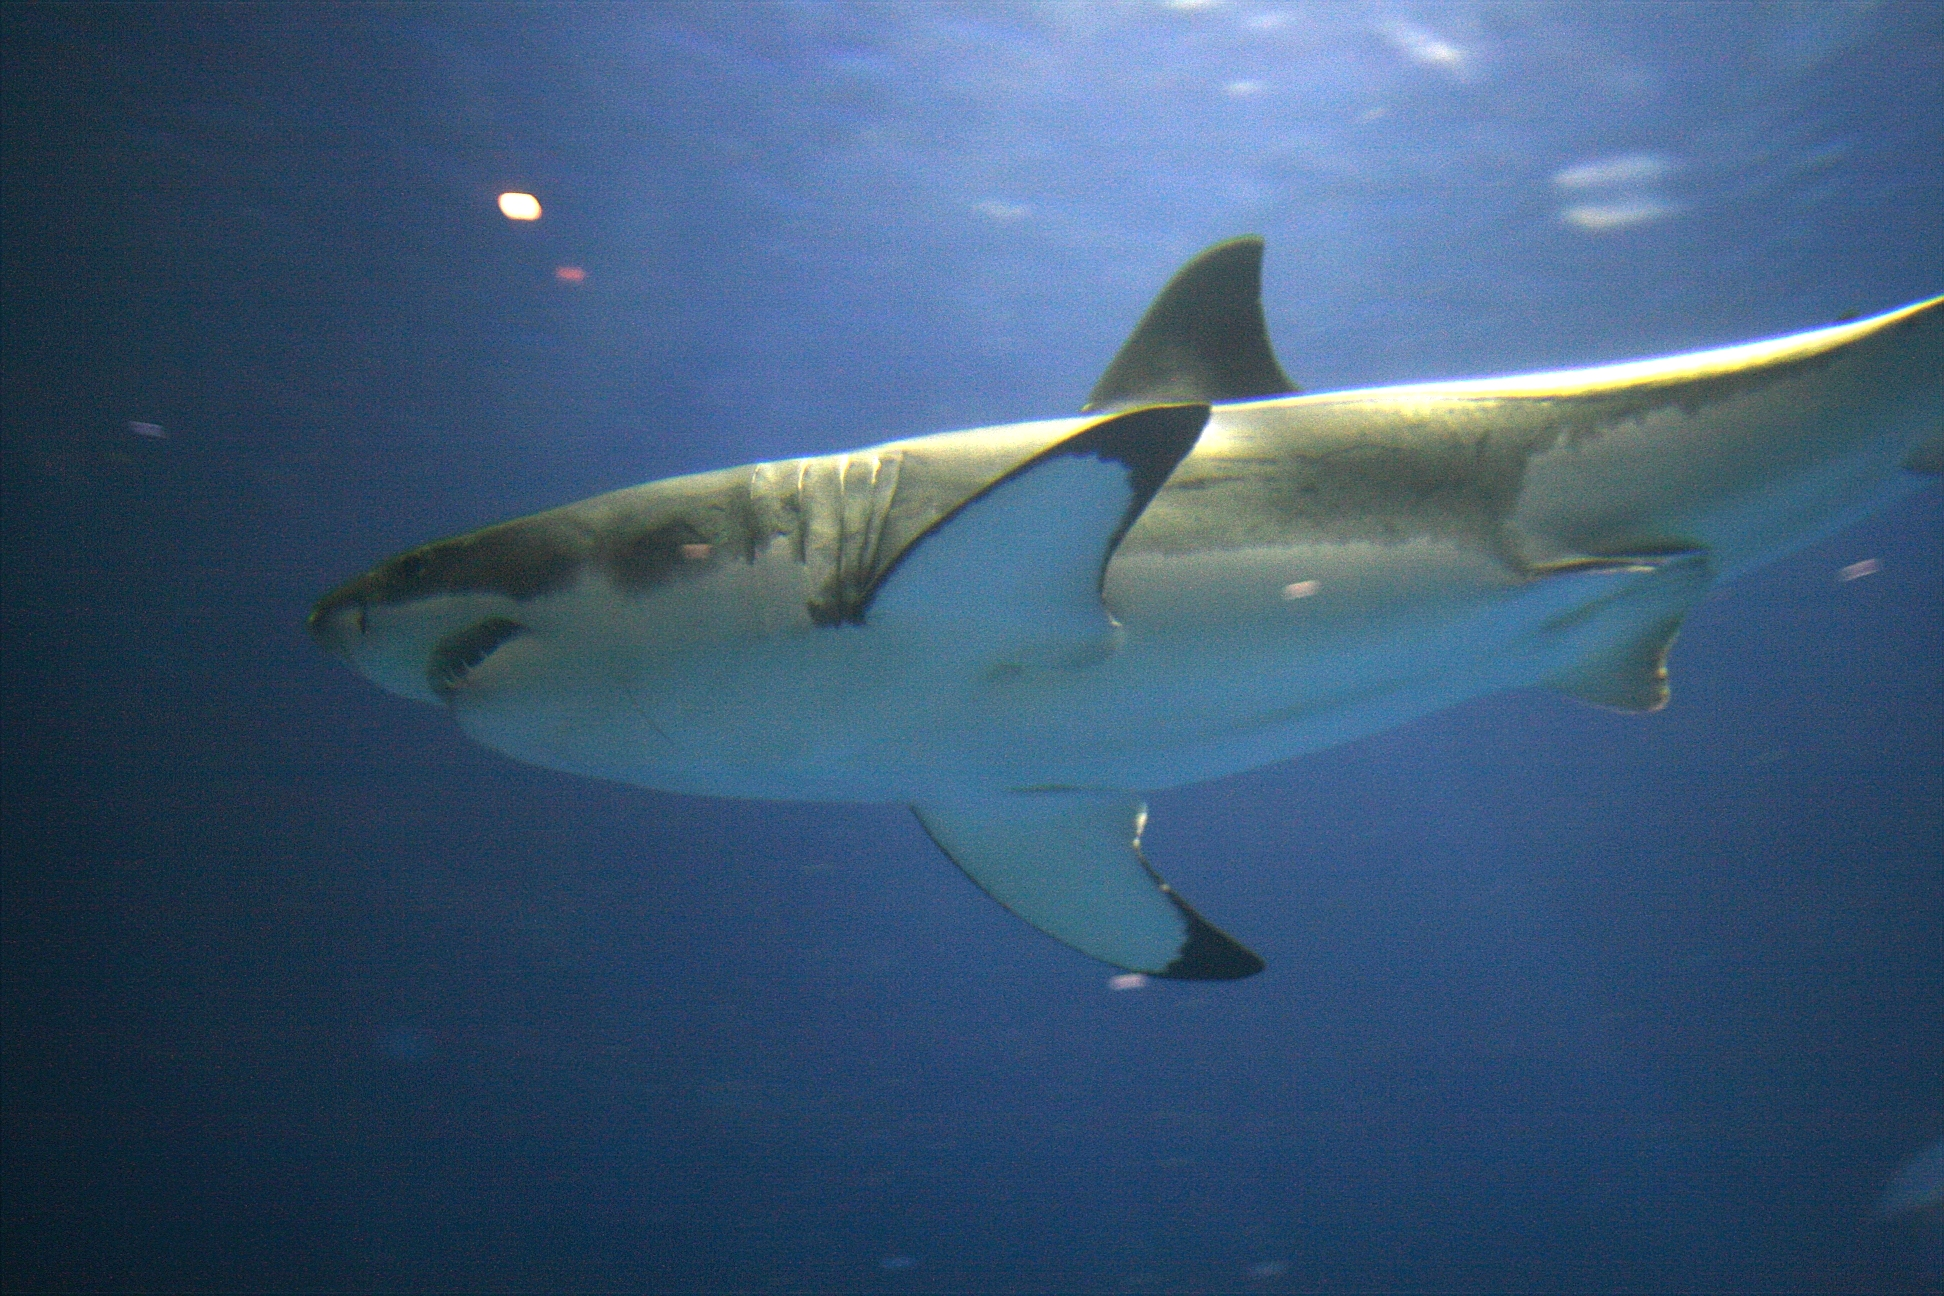 Great White at Monterey Bay Aquarium - <a href='https://commons.wikimedia.org/wiki/File:Great_white_aqurium.jpg'>Photo from Wikimedia</a>